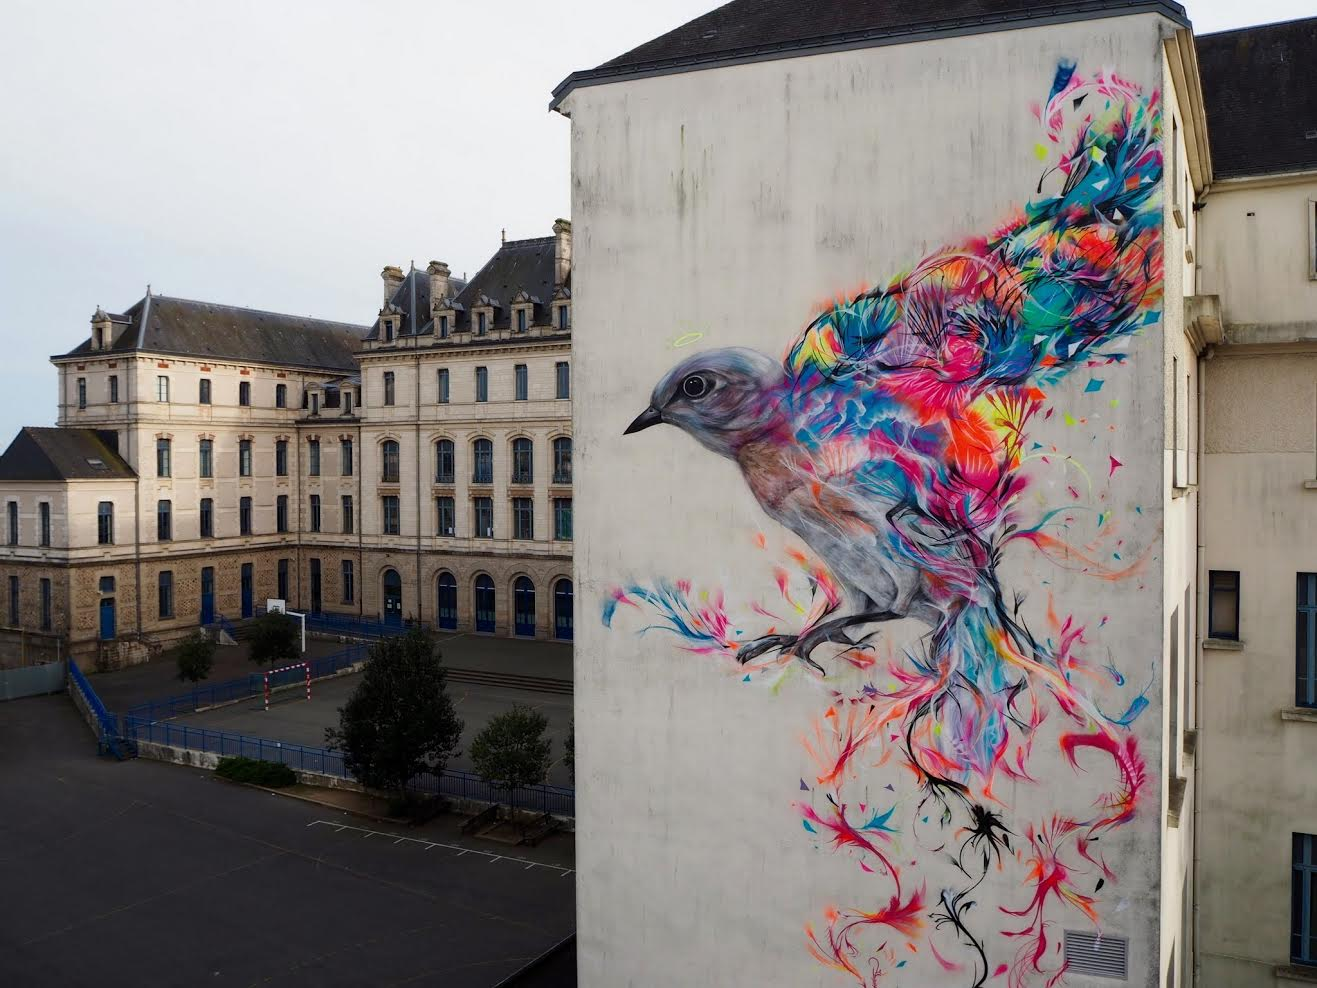 Street Art by L7m - In Vannes, France